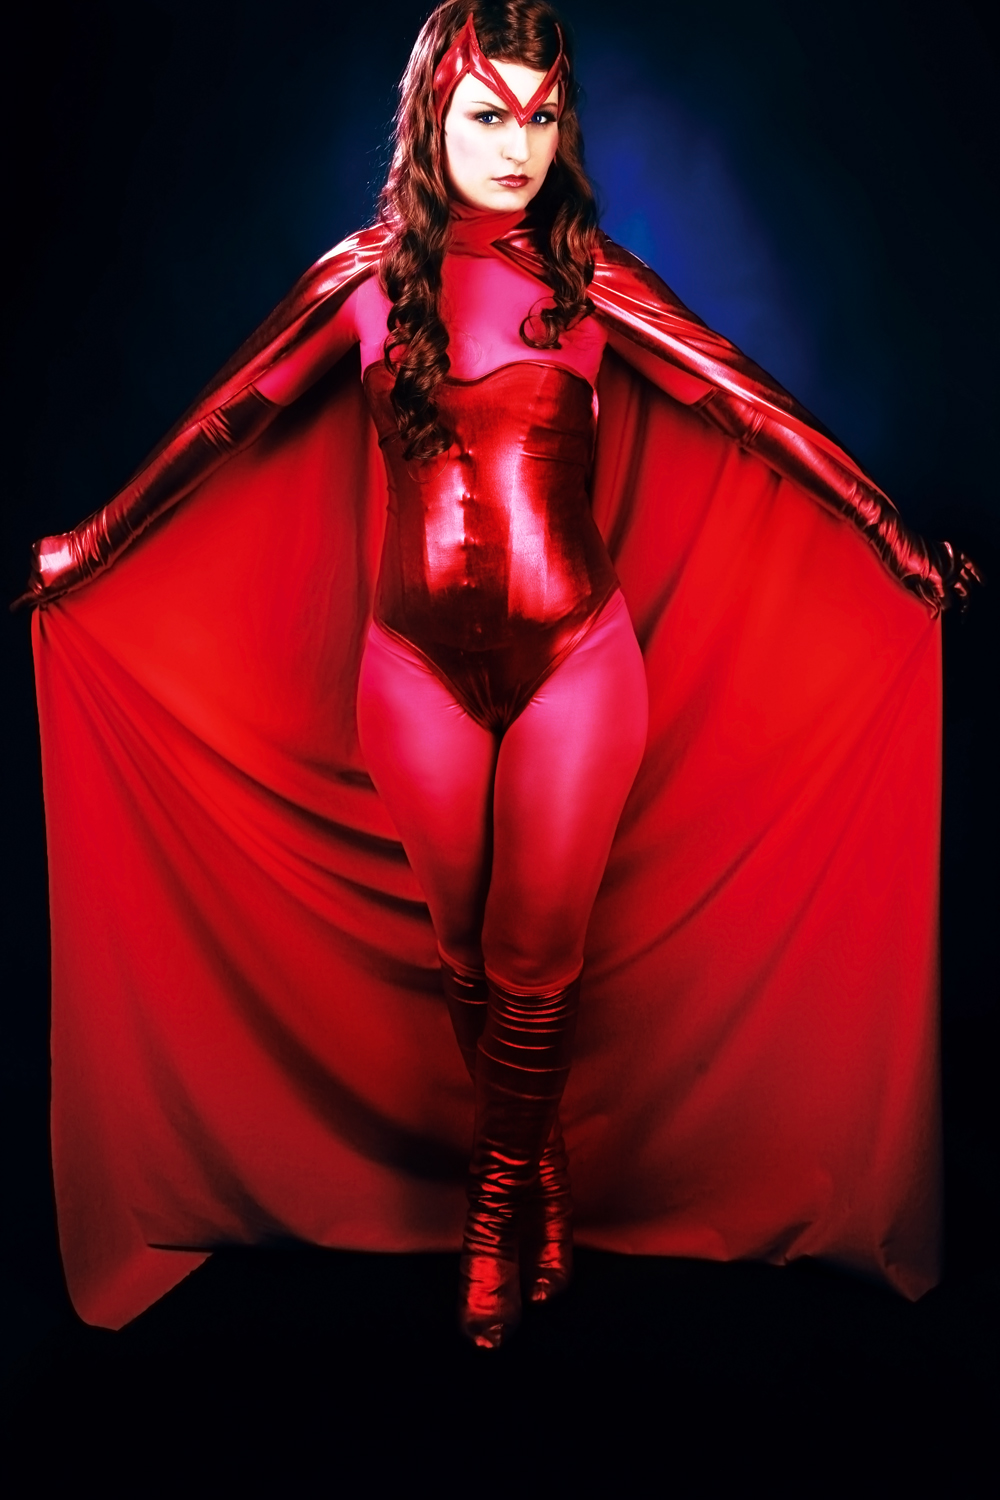 X-Men Scarlet Witch Cosplay Costume With Cape | cosercosplay.com